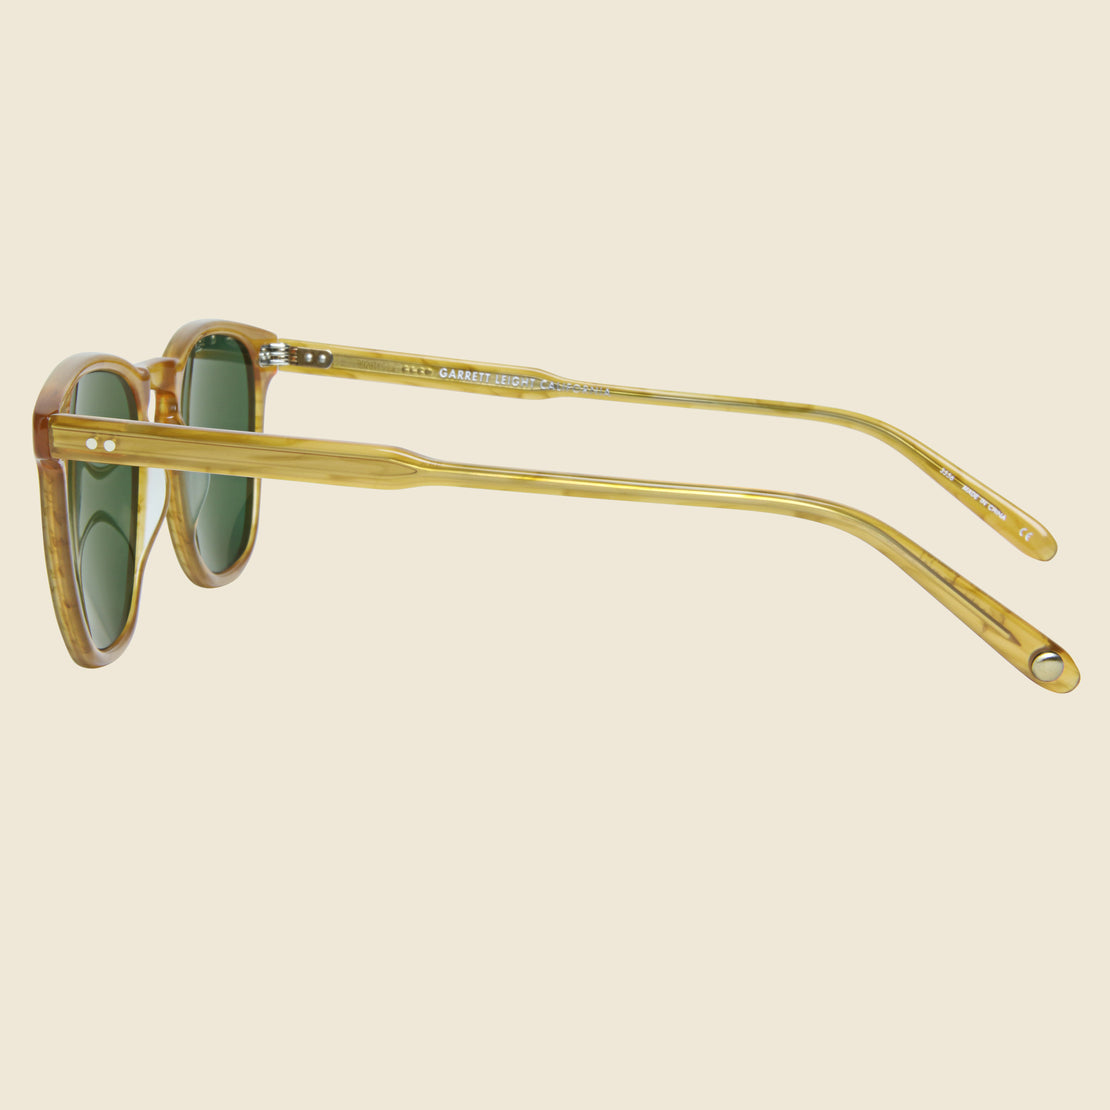 Brooks - Butterscotch/Green - Garrett Leight - STAG Provisions - Accessories - Eyewear